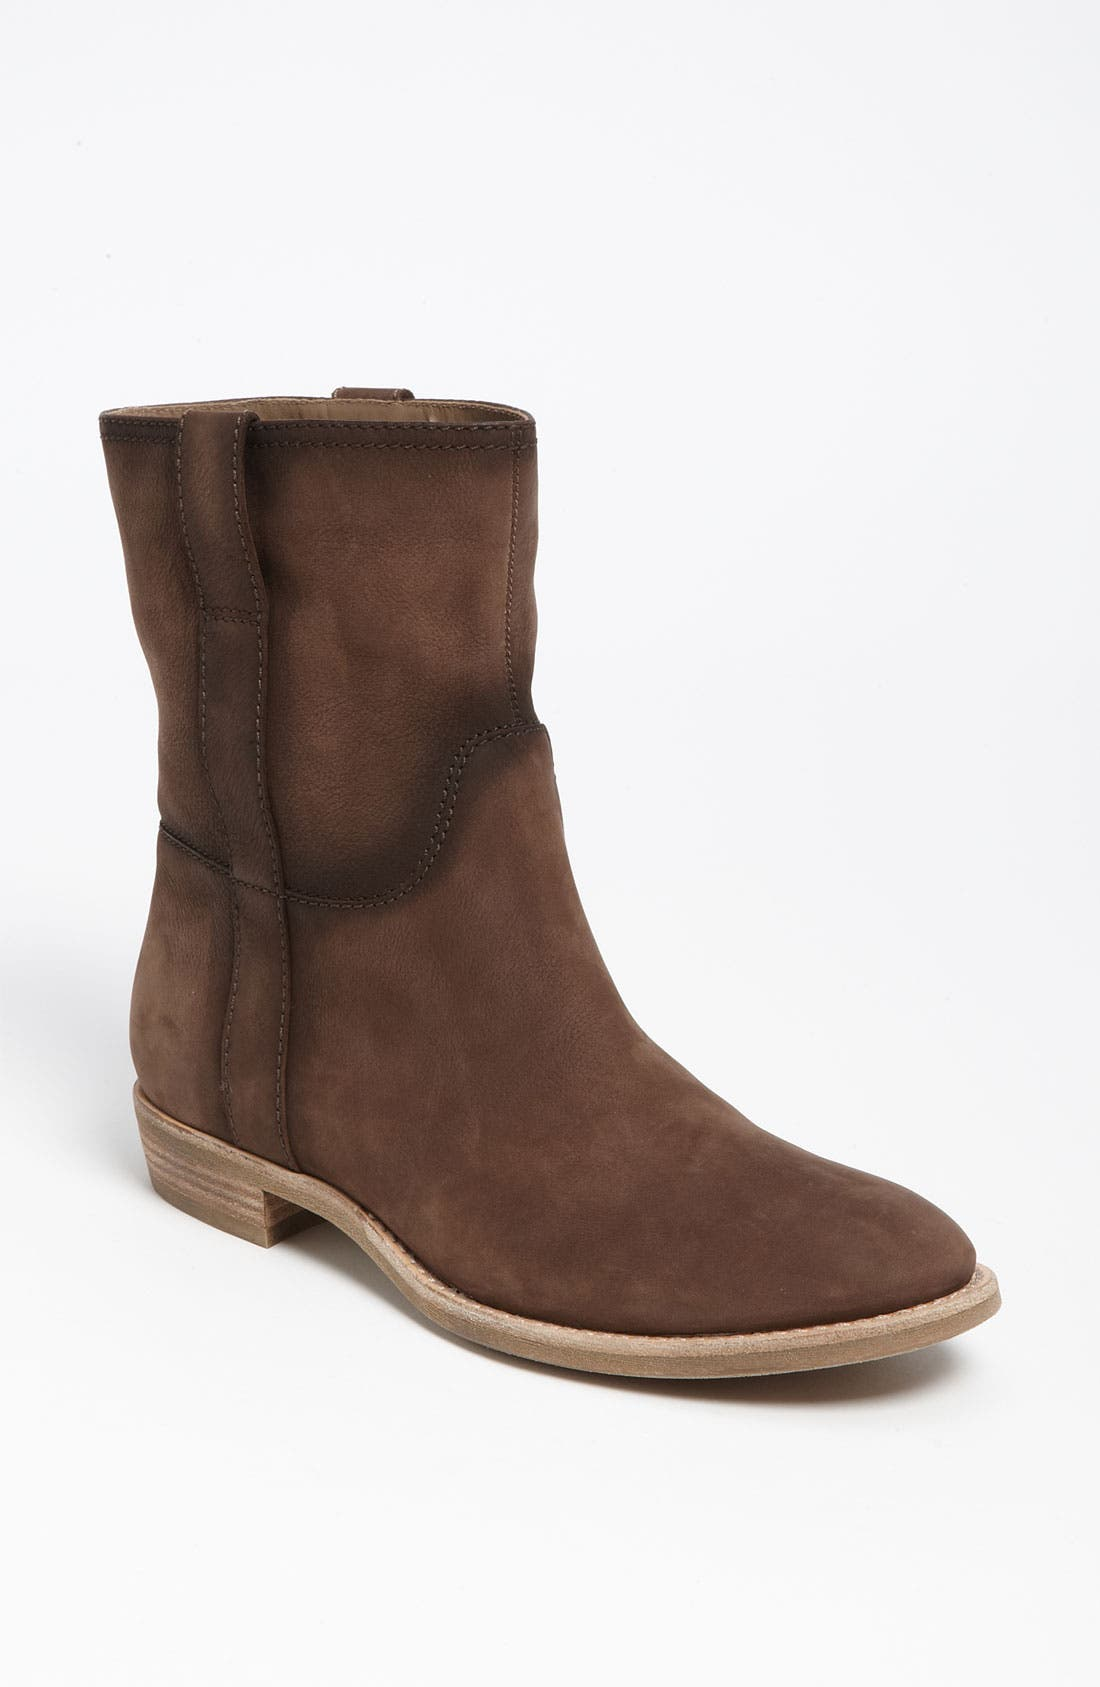 Alternate Image 1 Selected - ECCO 'Norwood' Boot